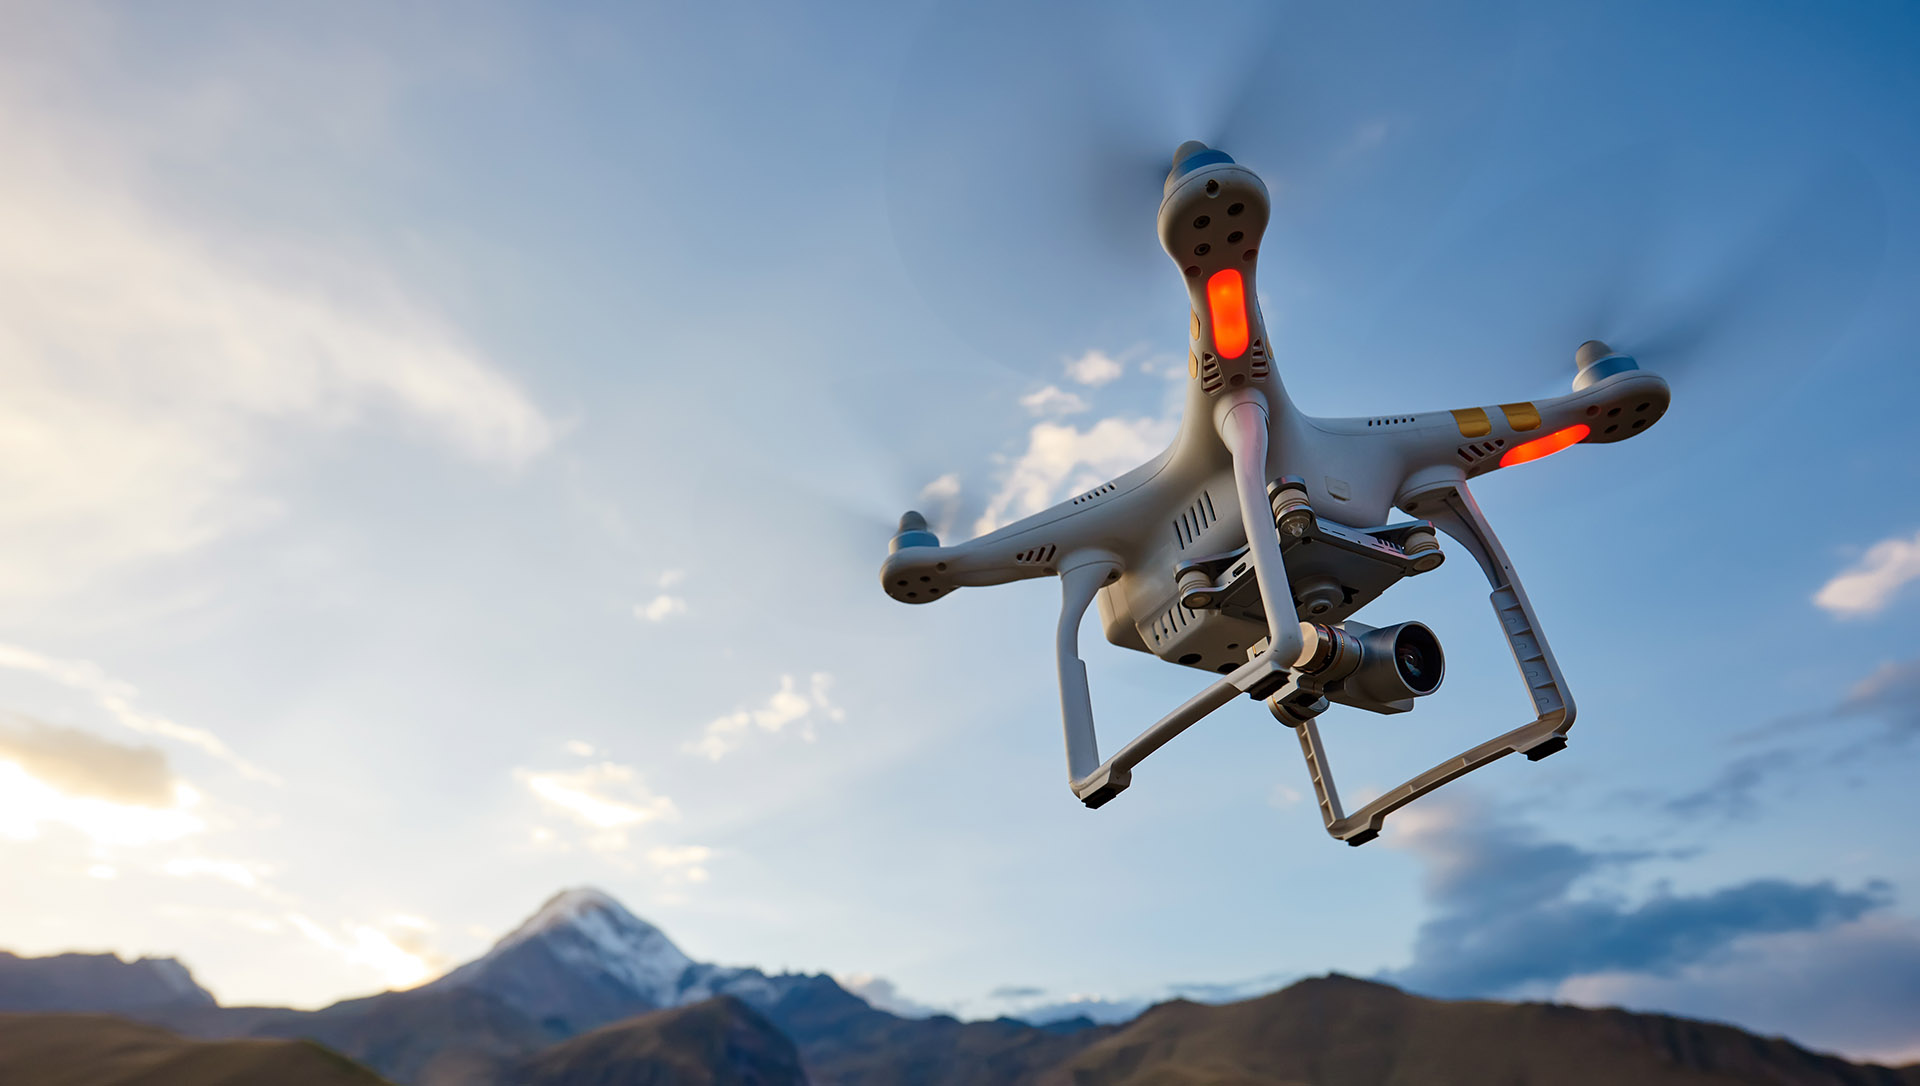 Drone Pilot Training For Faa Certification Steps For Success